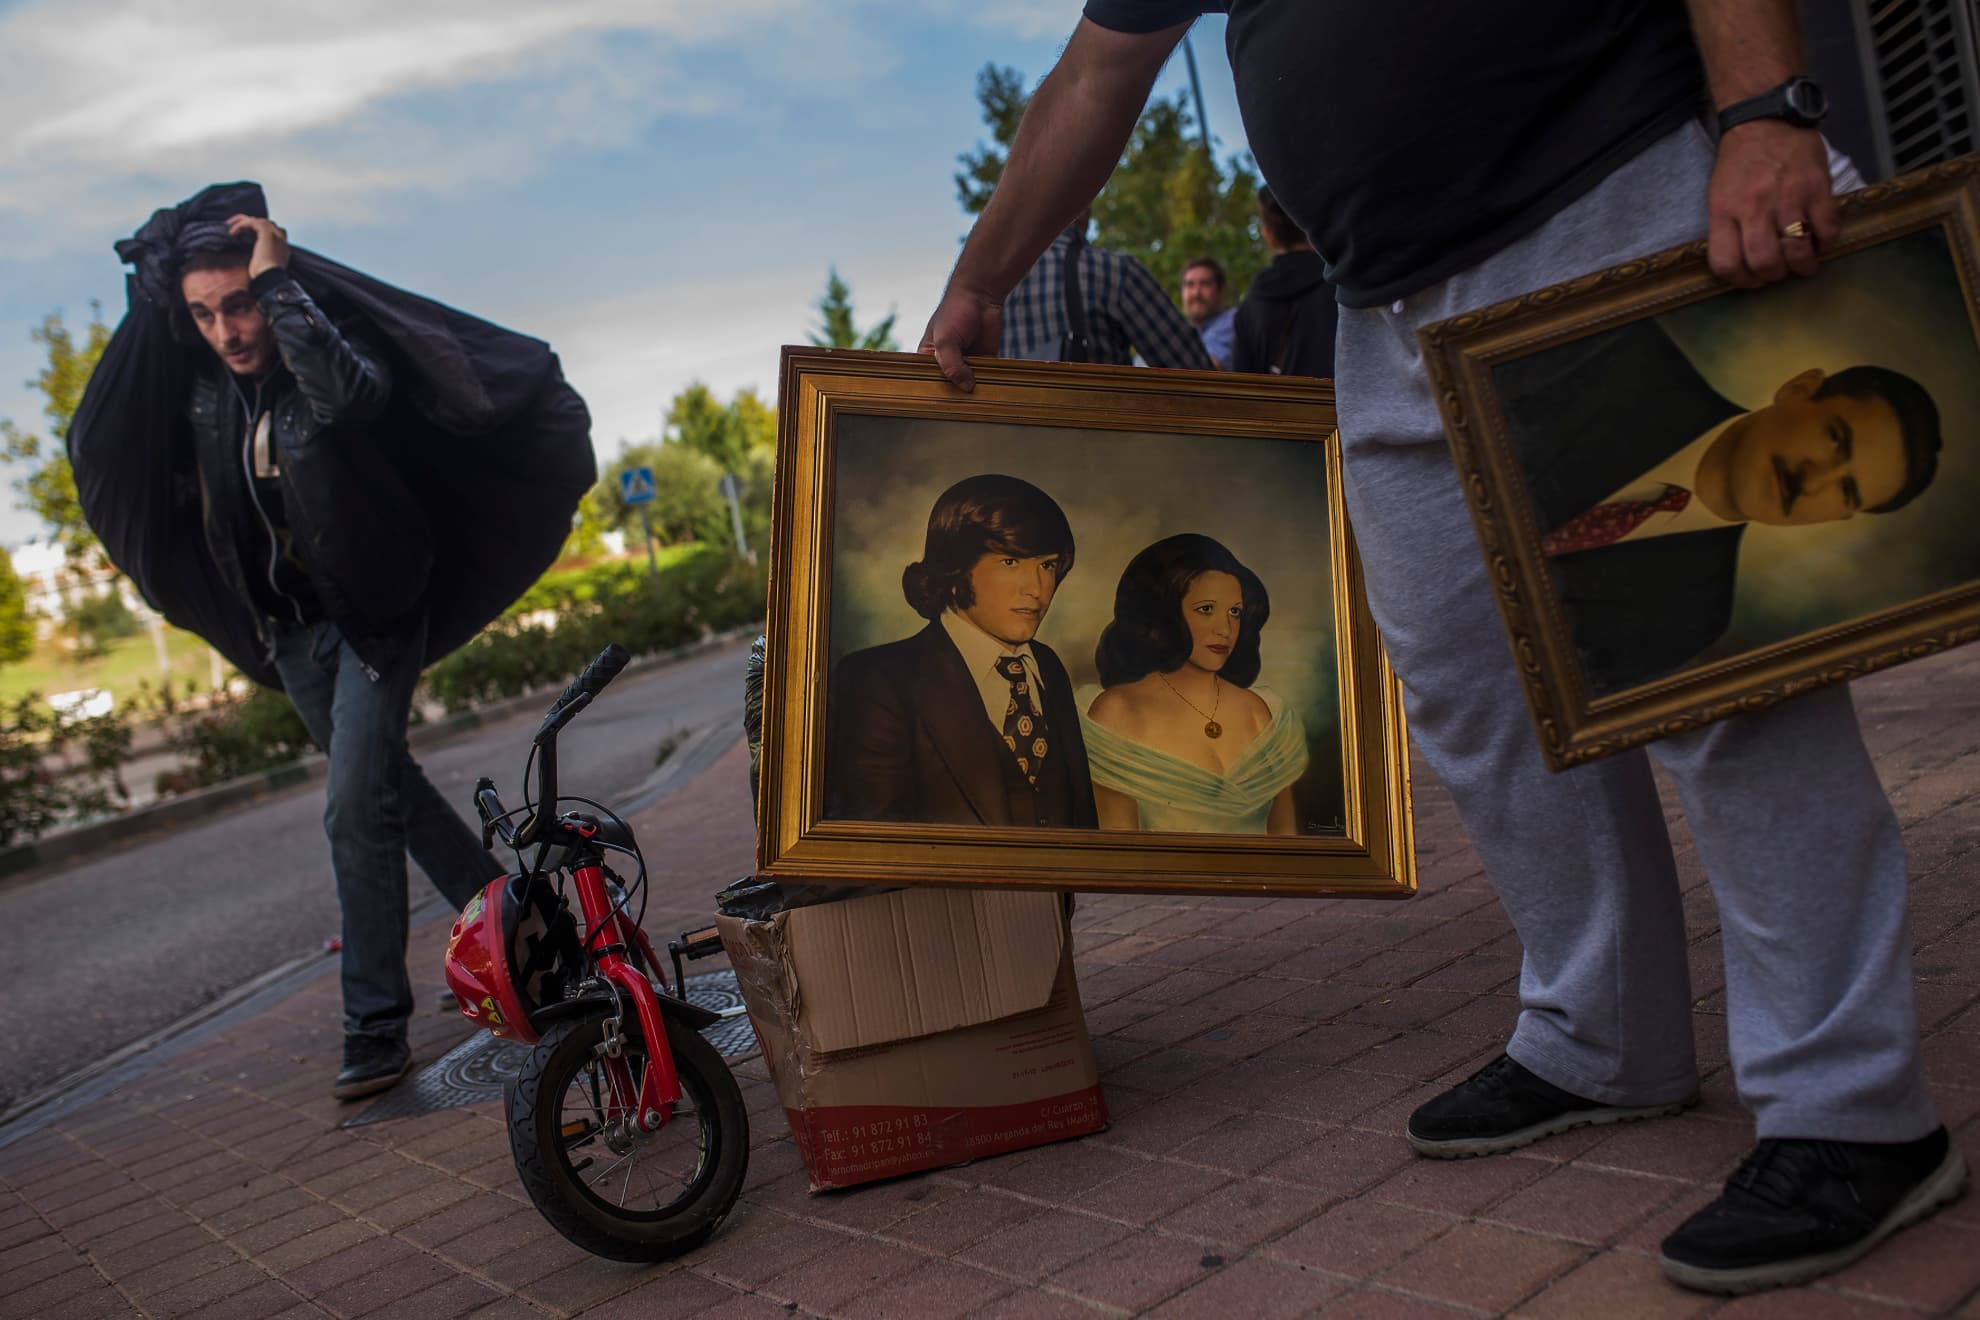 Friends an activists carry pictures and bags as they help Veronica Labradas to move out after the police evict her in Madrid, Wednesday, Oct. 22, 2014. Labradas, and her family occupied an apartment six months ago as they could not afford to pay their rent after loosing their business.